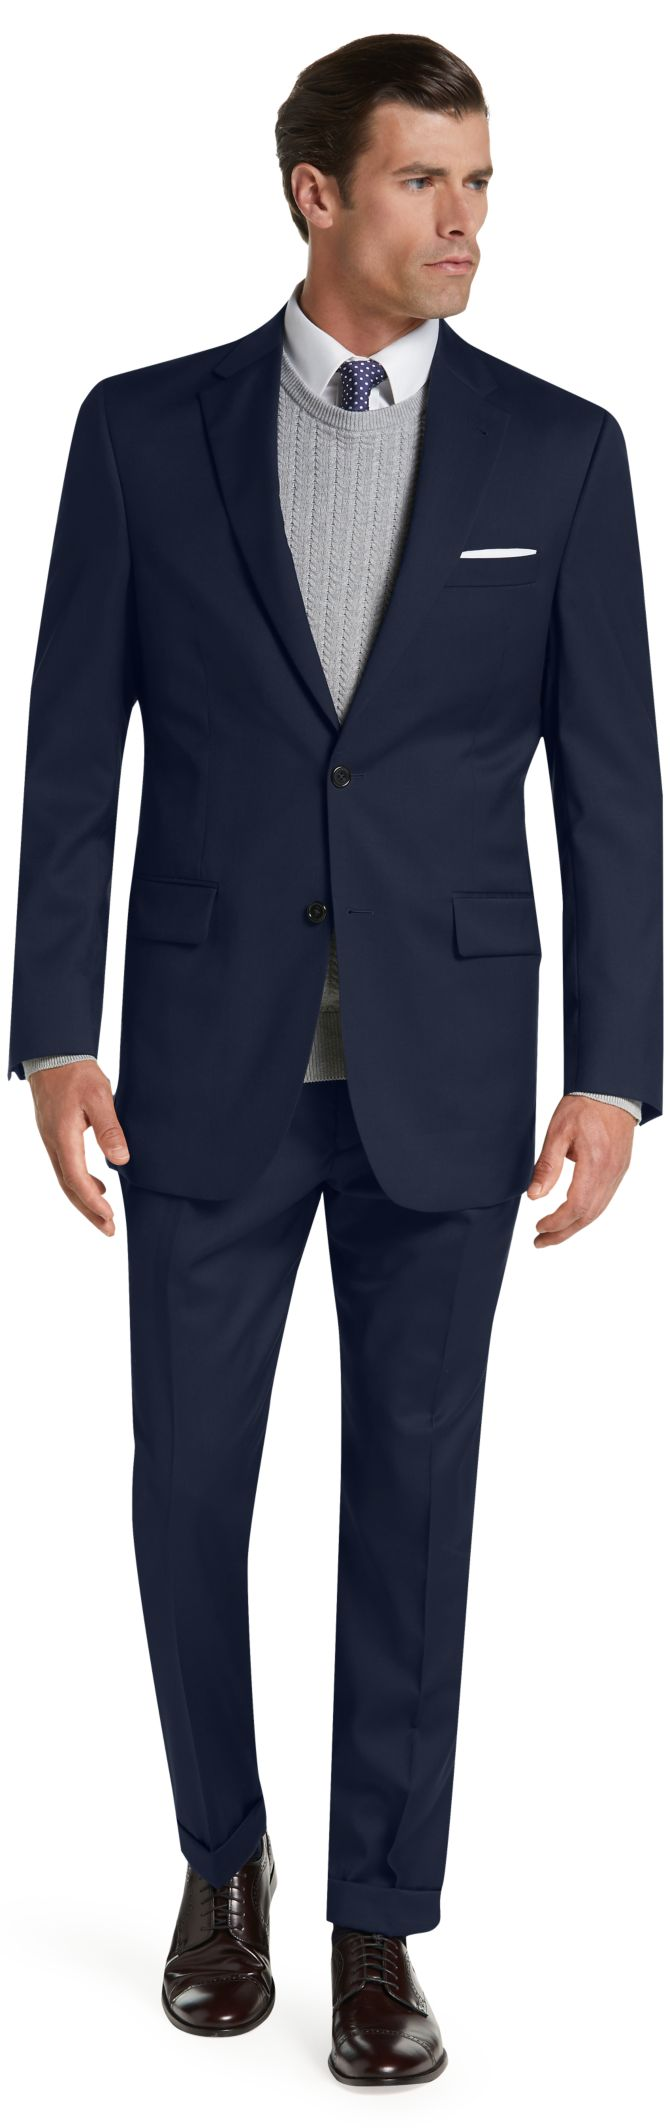 Signature Collection Traditional Fit Suit (various colors)